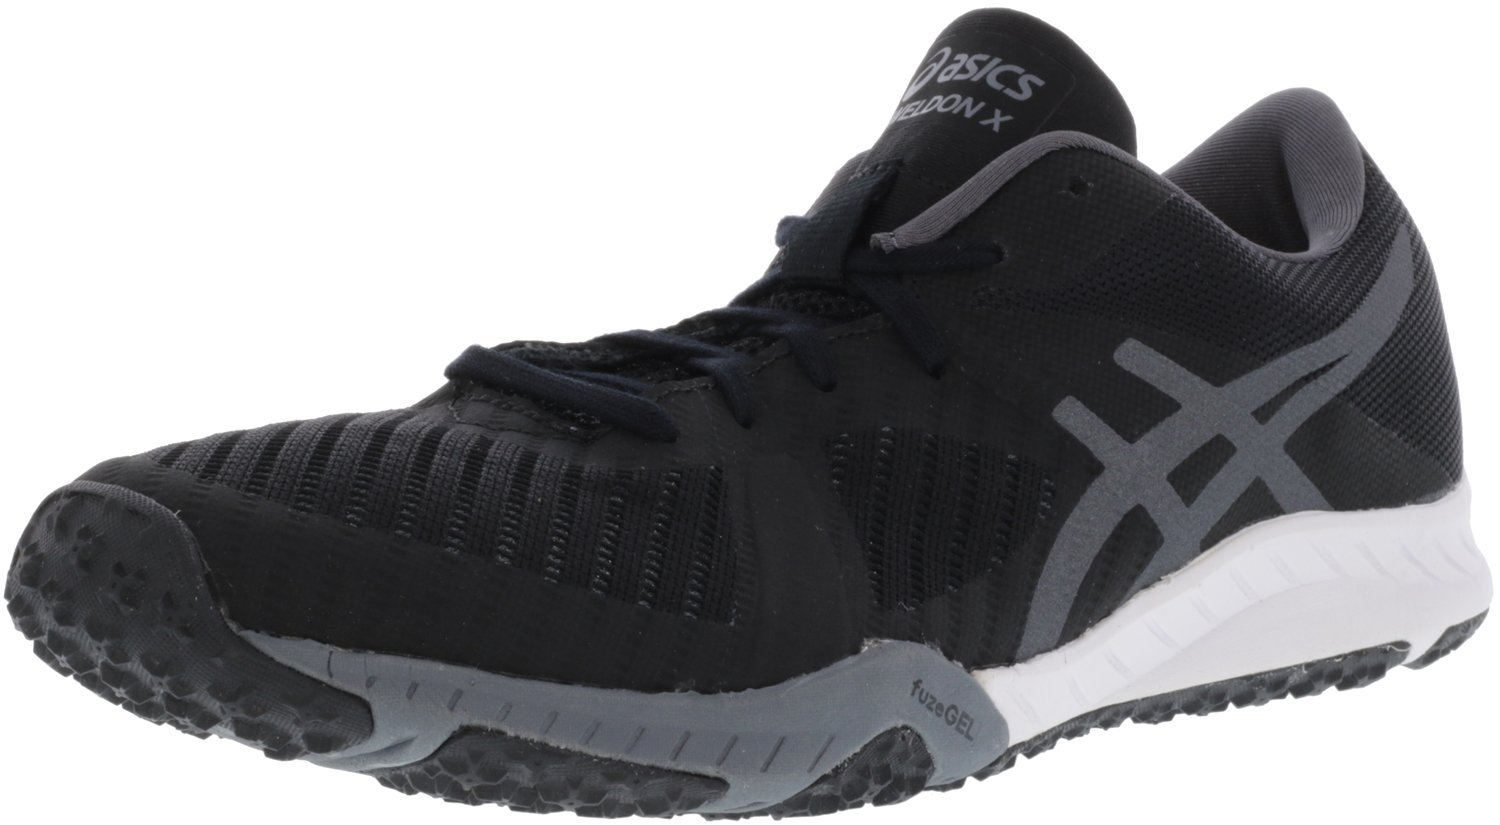 ASICS Womens Weldon x Fabric Low Top Lace up Running Sneaker B01N07F5MM 11 B(M) US|Black/Carbon/White